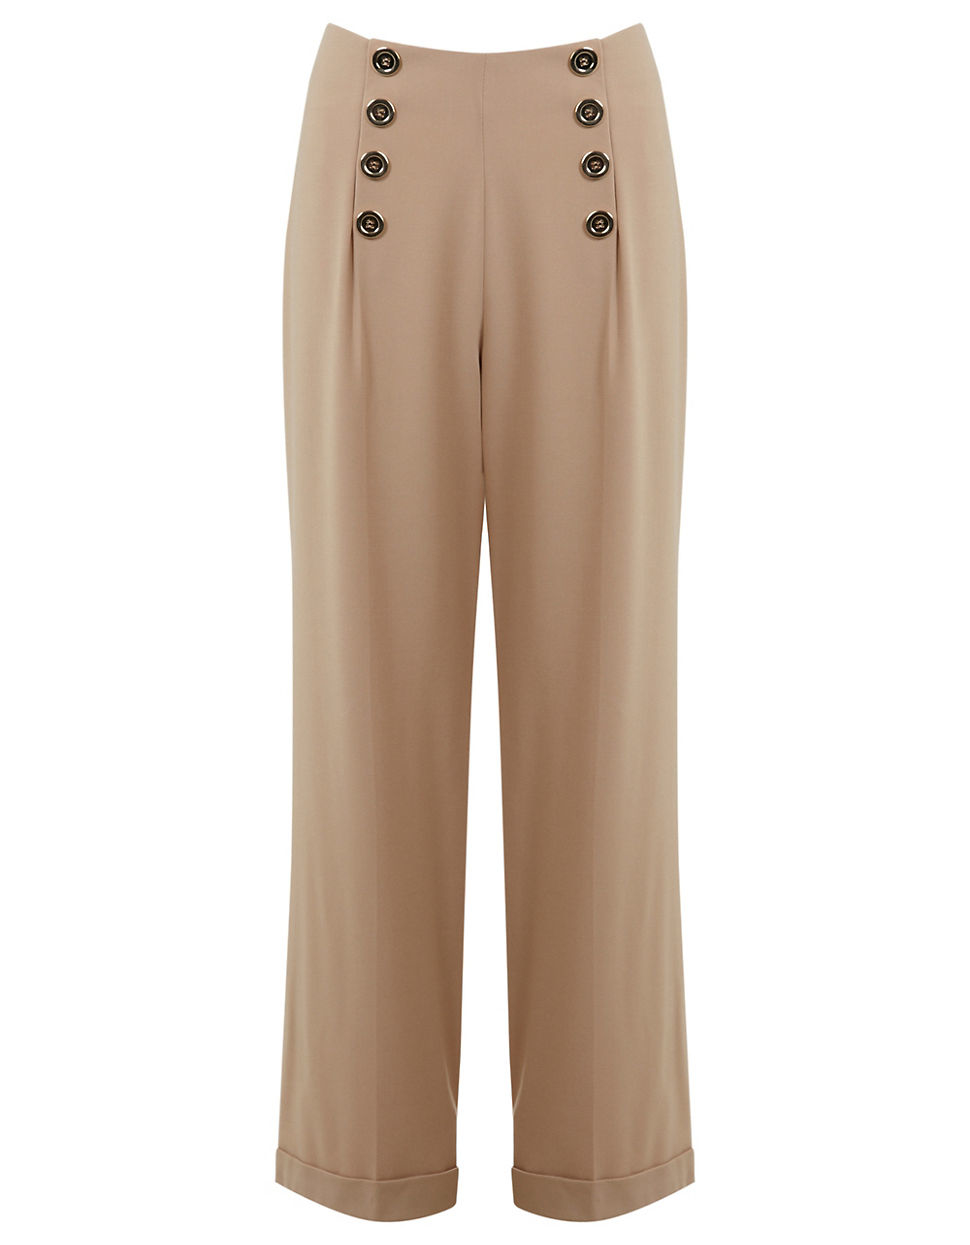 7b26a9002931e Miss selfridge High-waist Button Trousers in Natural